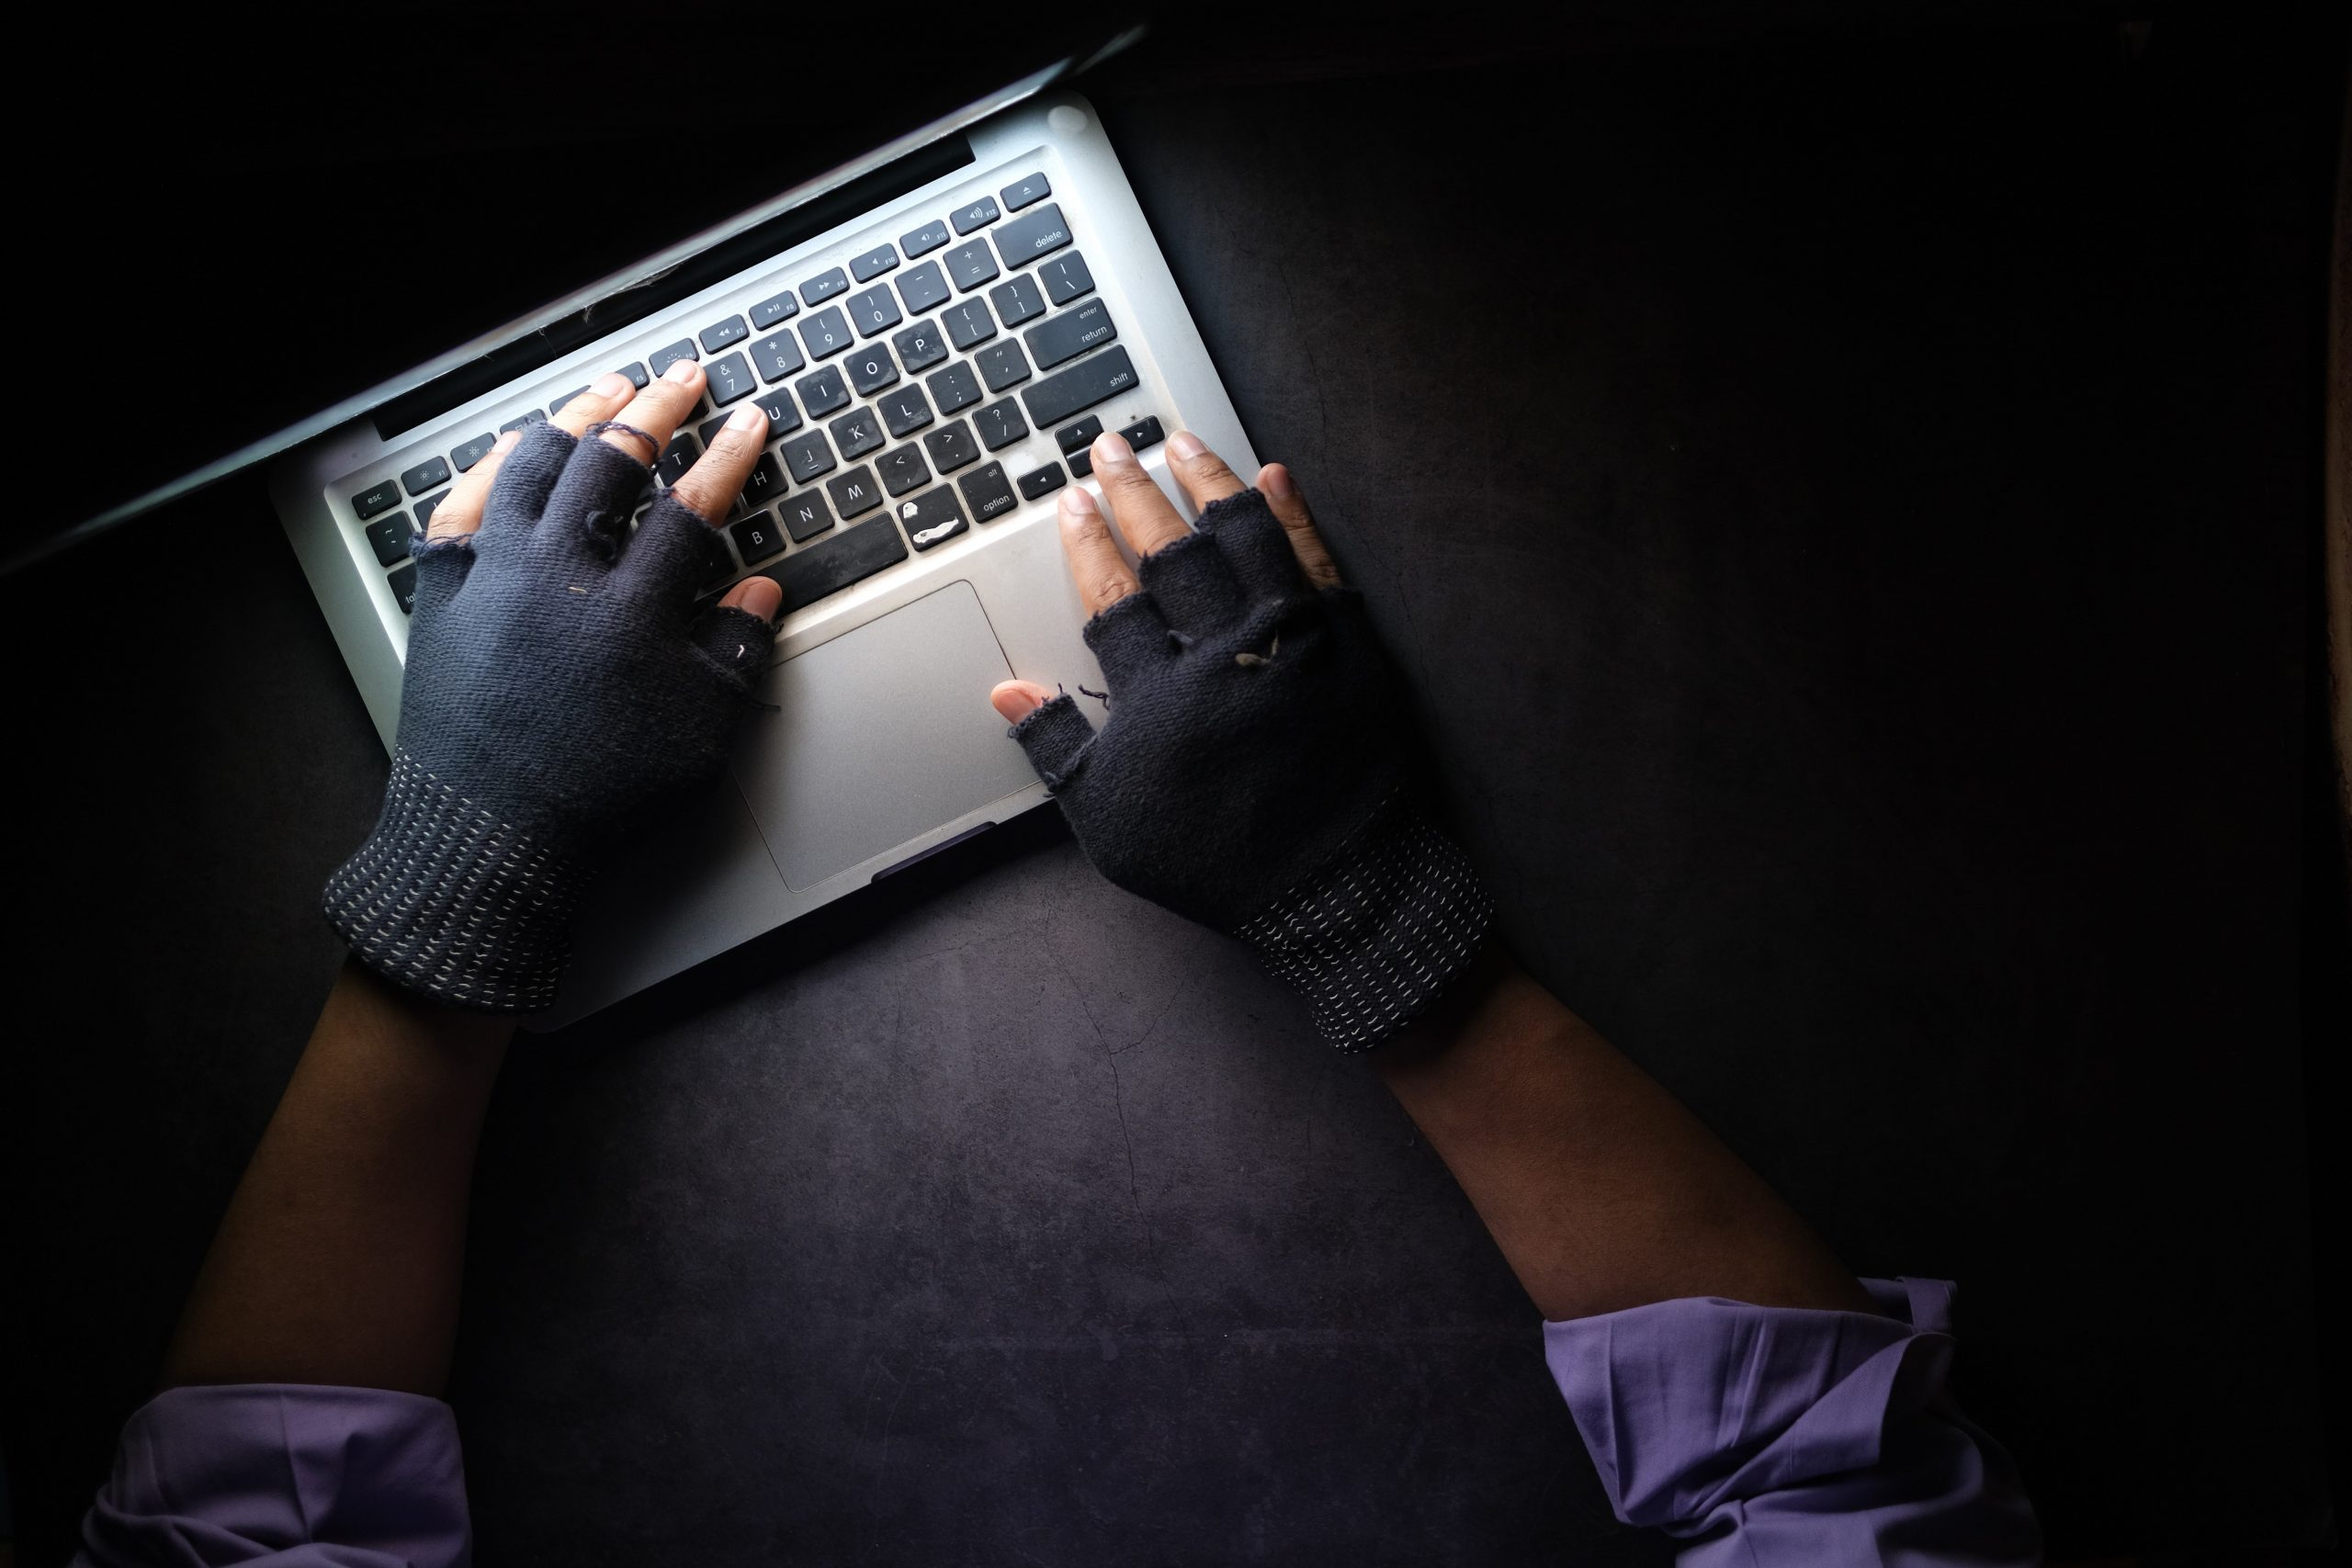 An aerial shot shows a pair of hands wearing gloves typing on a Macbook laptop. The photo is lit only by the laptop screen.